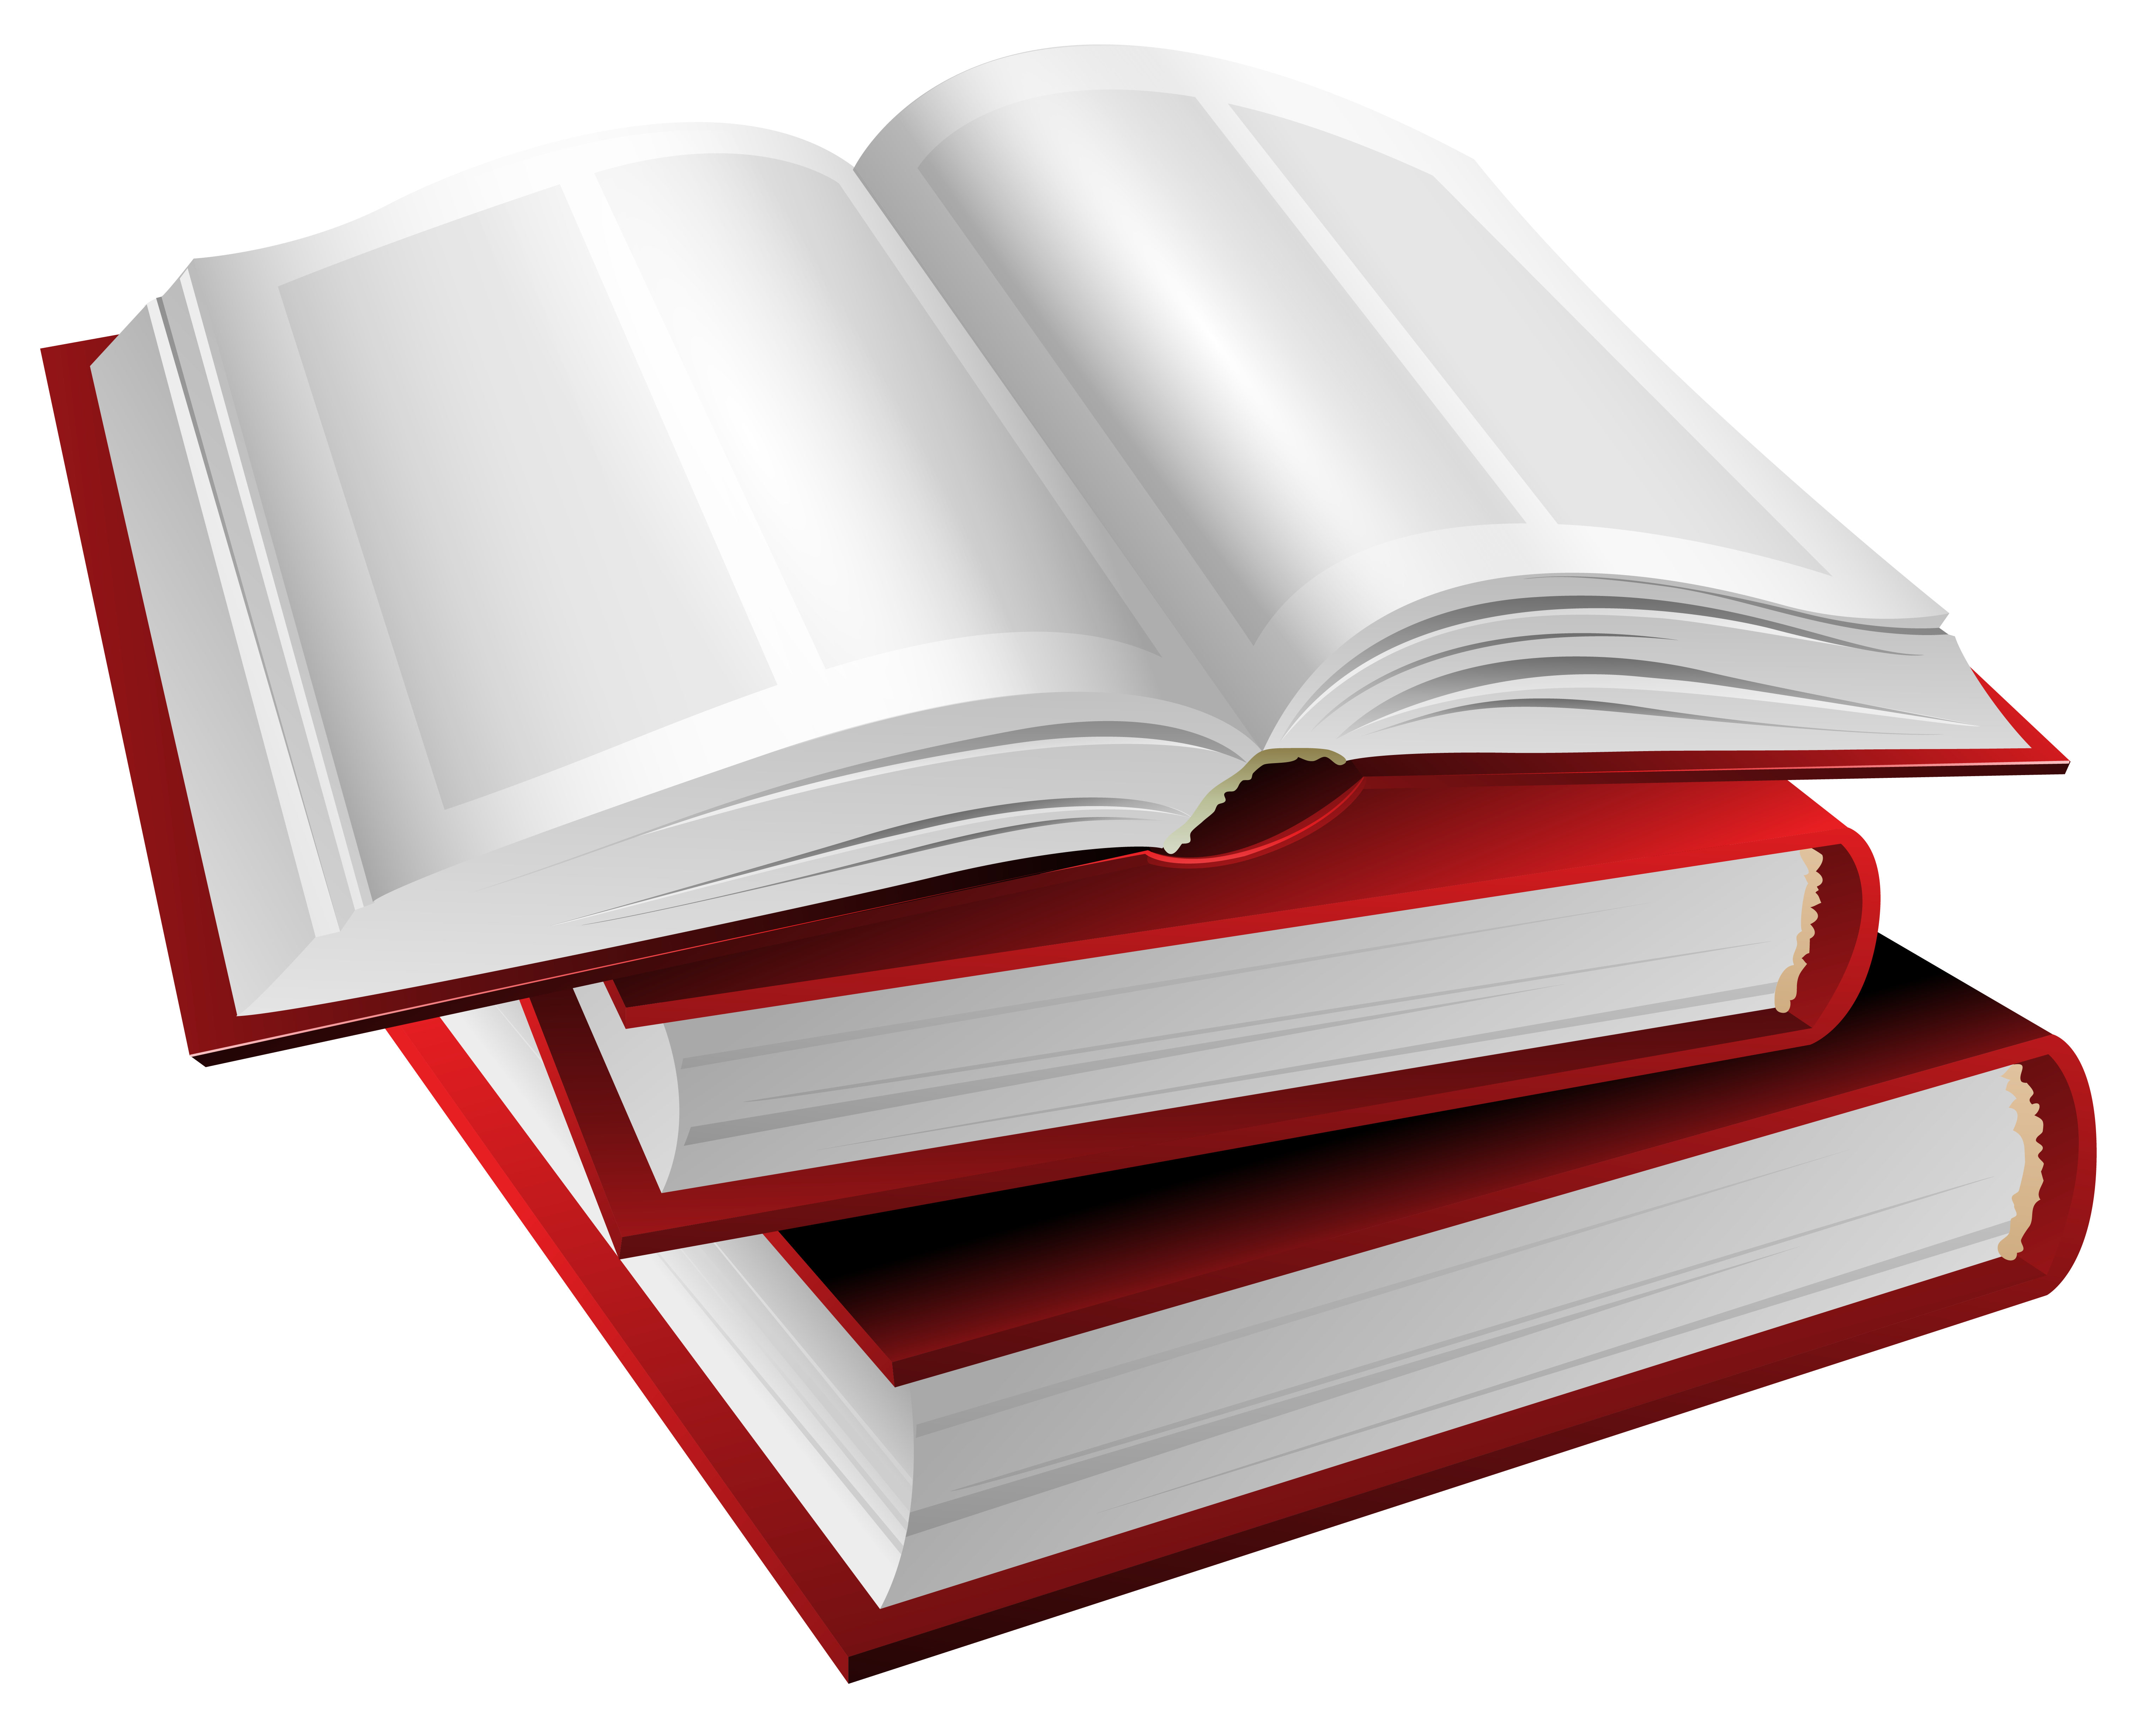 Book clipart png transparent Image Gallery View Quality Books